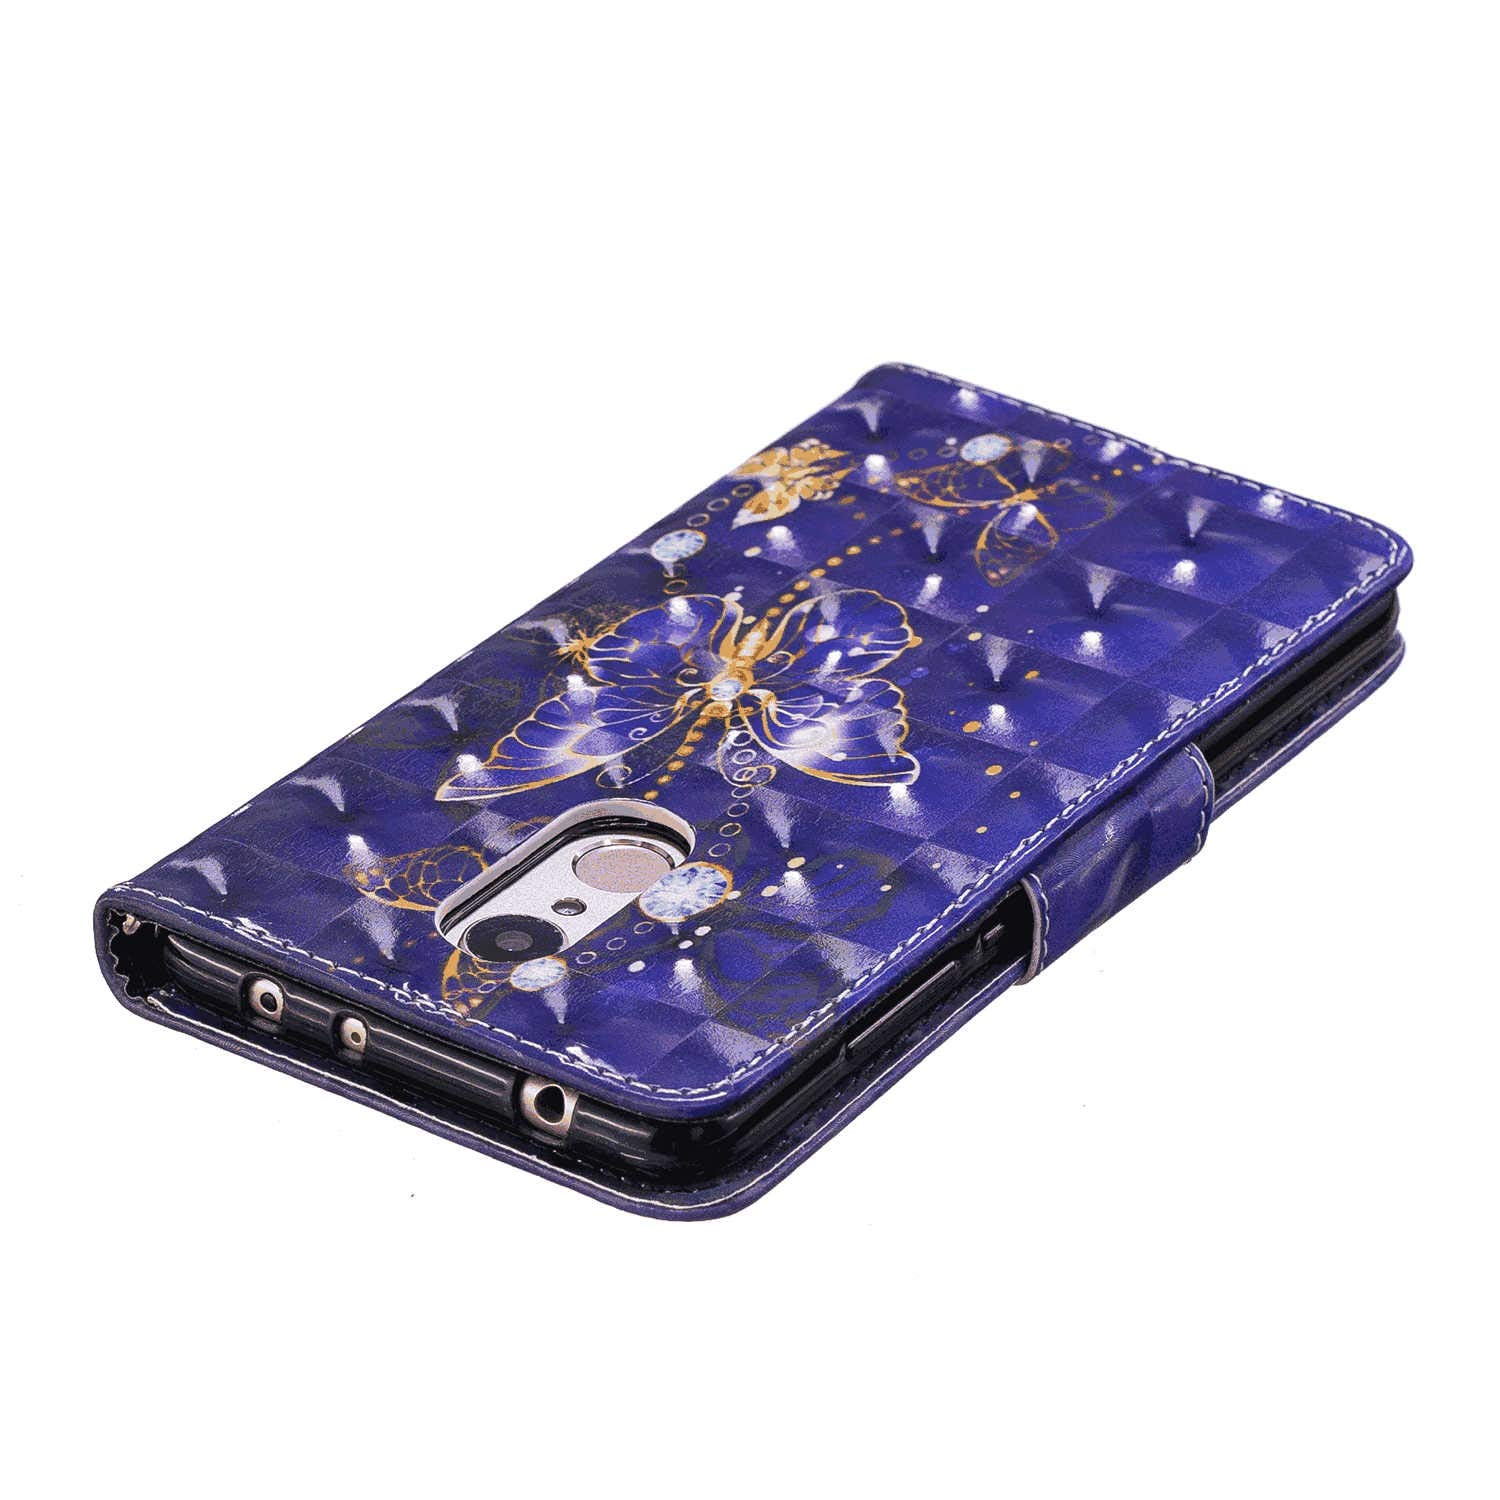 Cover for Huawei MATE30 PRO Leather Mobile Phone case Kickstand Extra-Protective Business Card Holders with Free Waterproof-Bag Delicate Huawei MATE30 PRO Flip Case